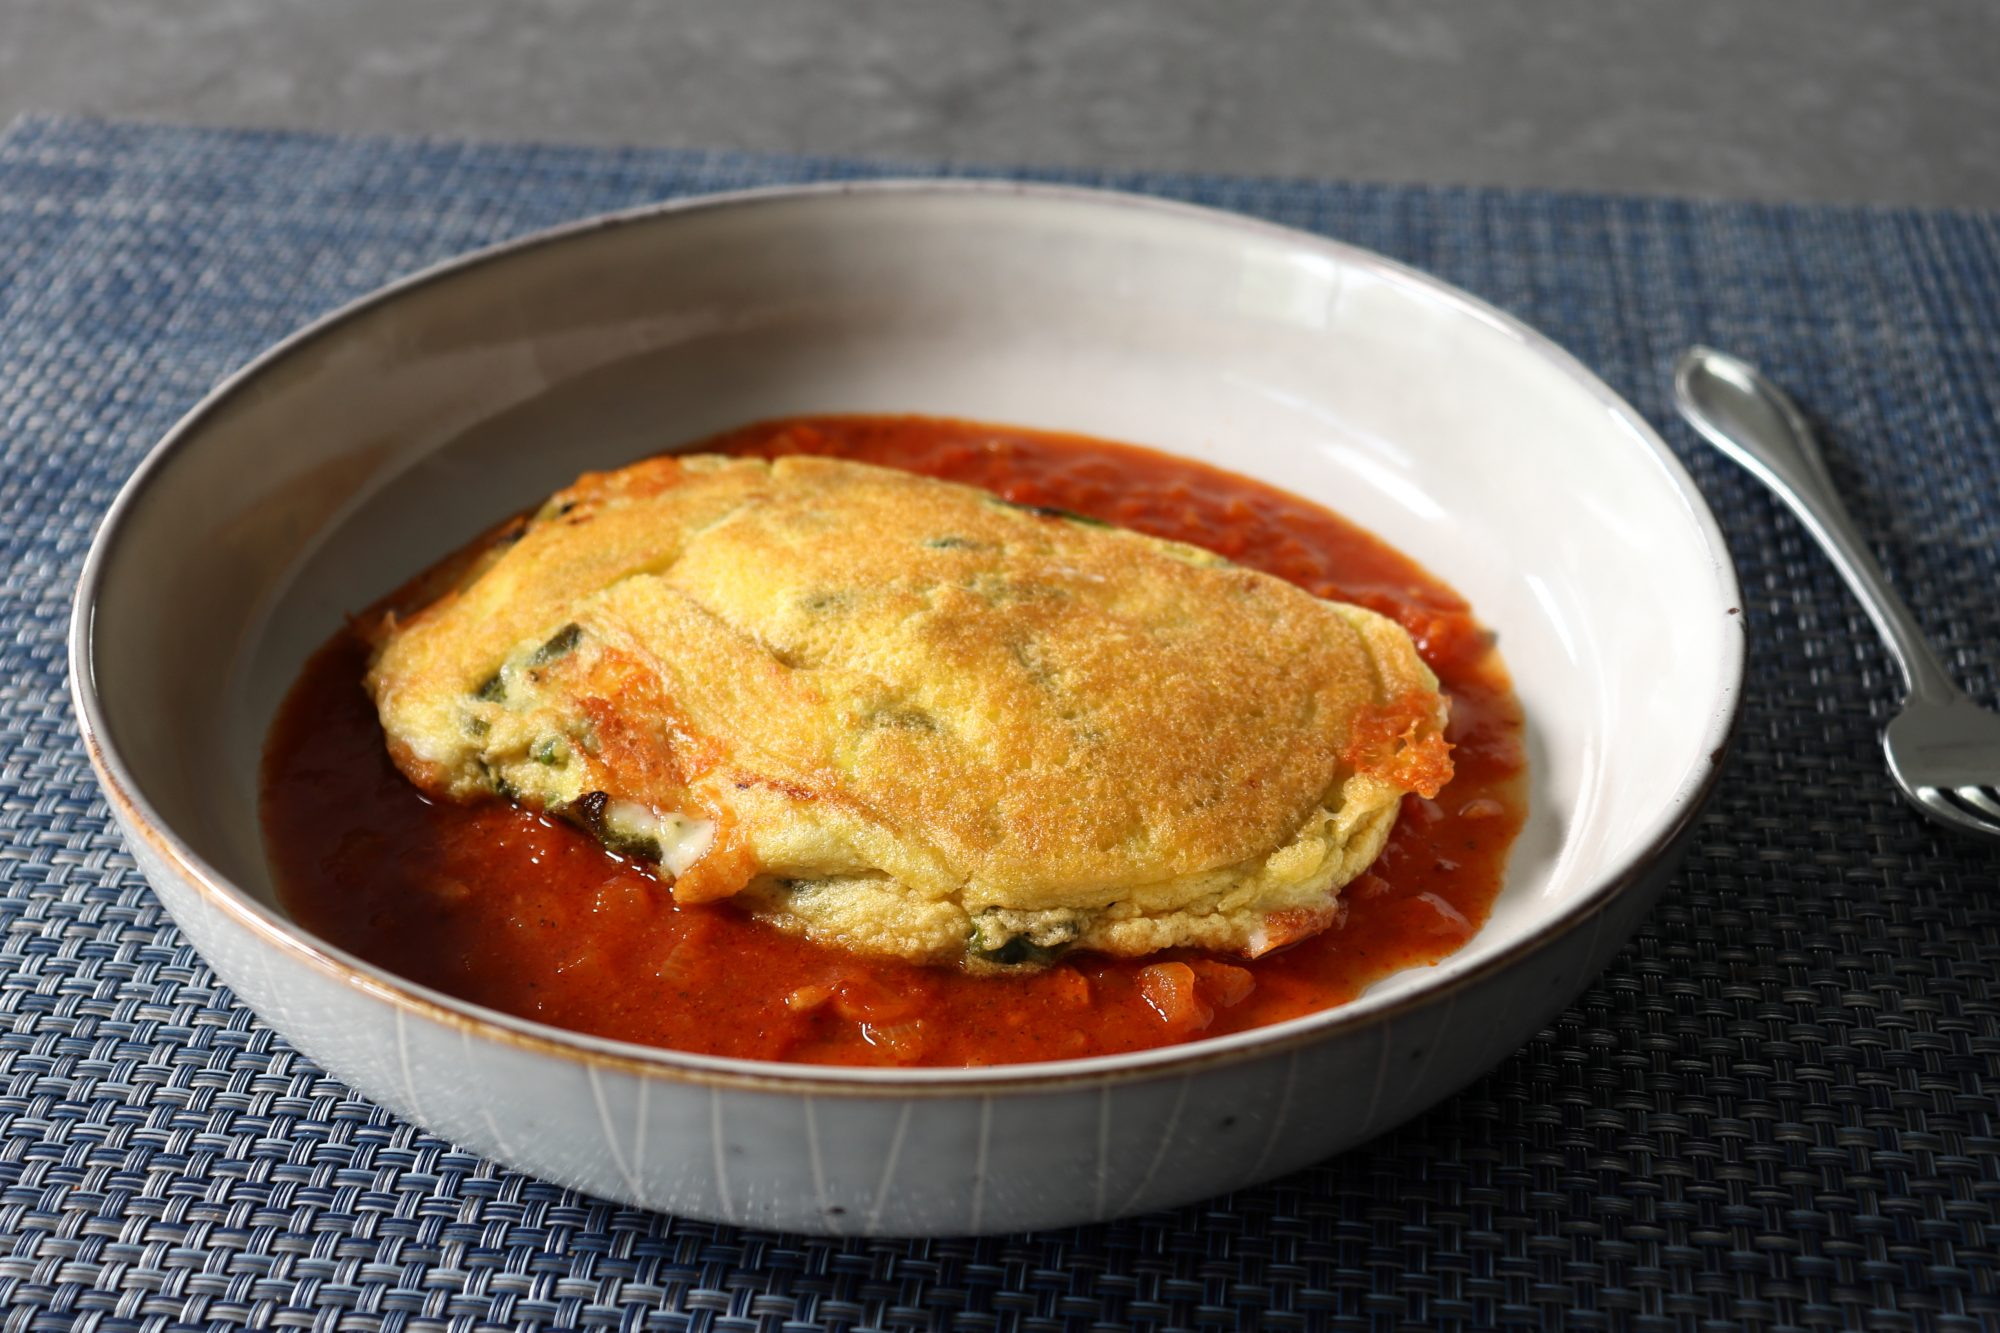 a bowl holding a pancake version of chile relleno on a spiced tomato sauce